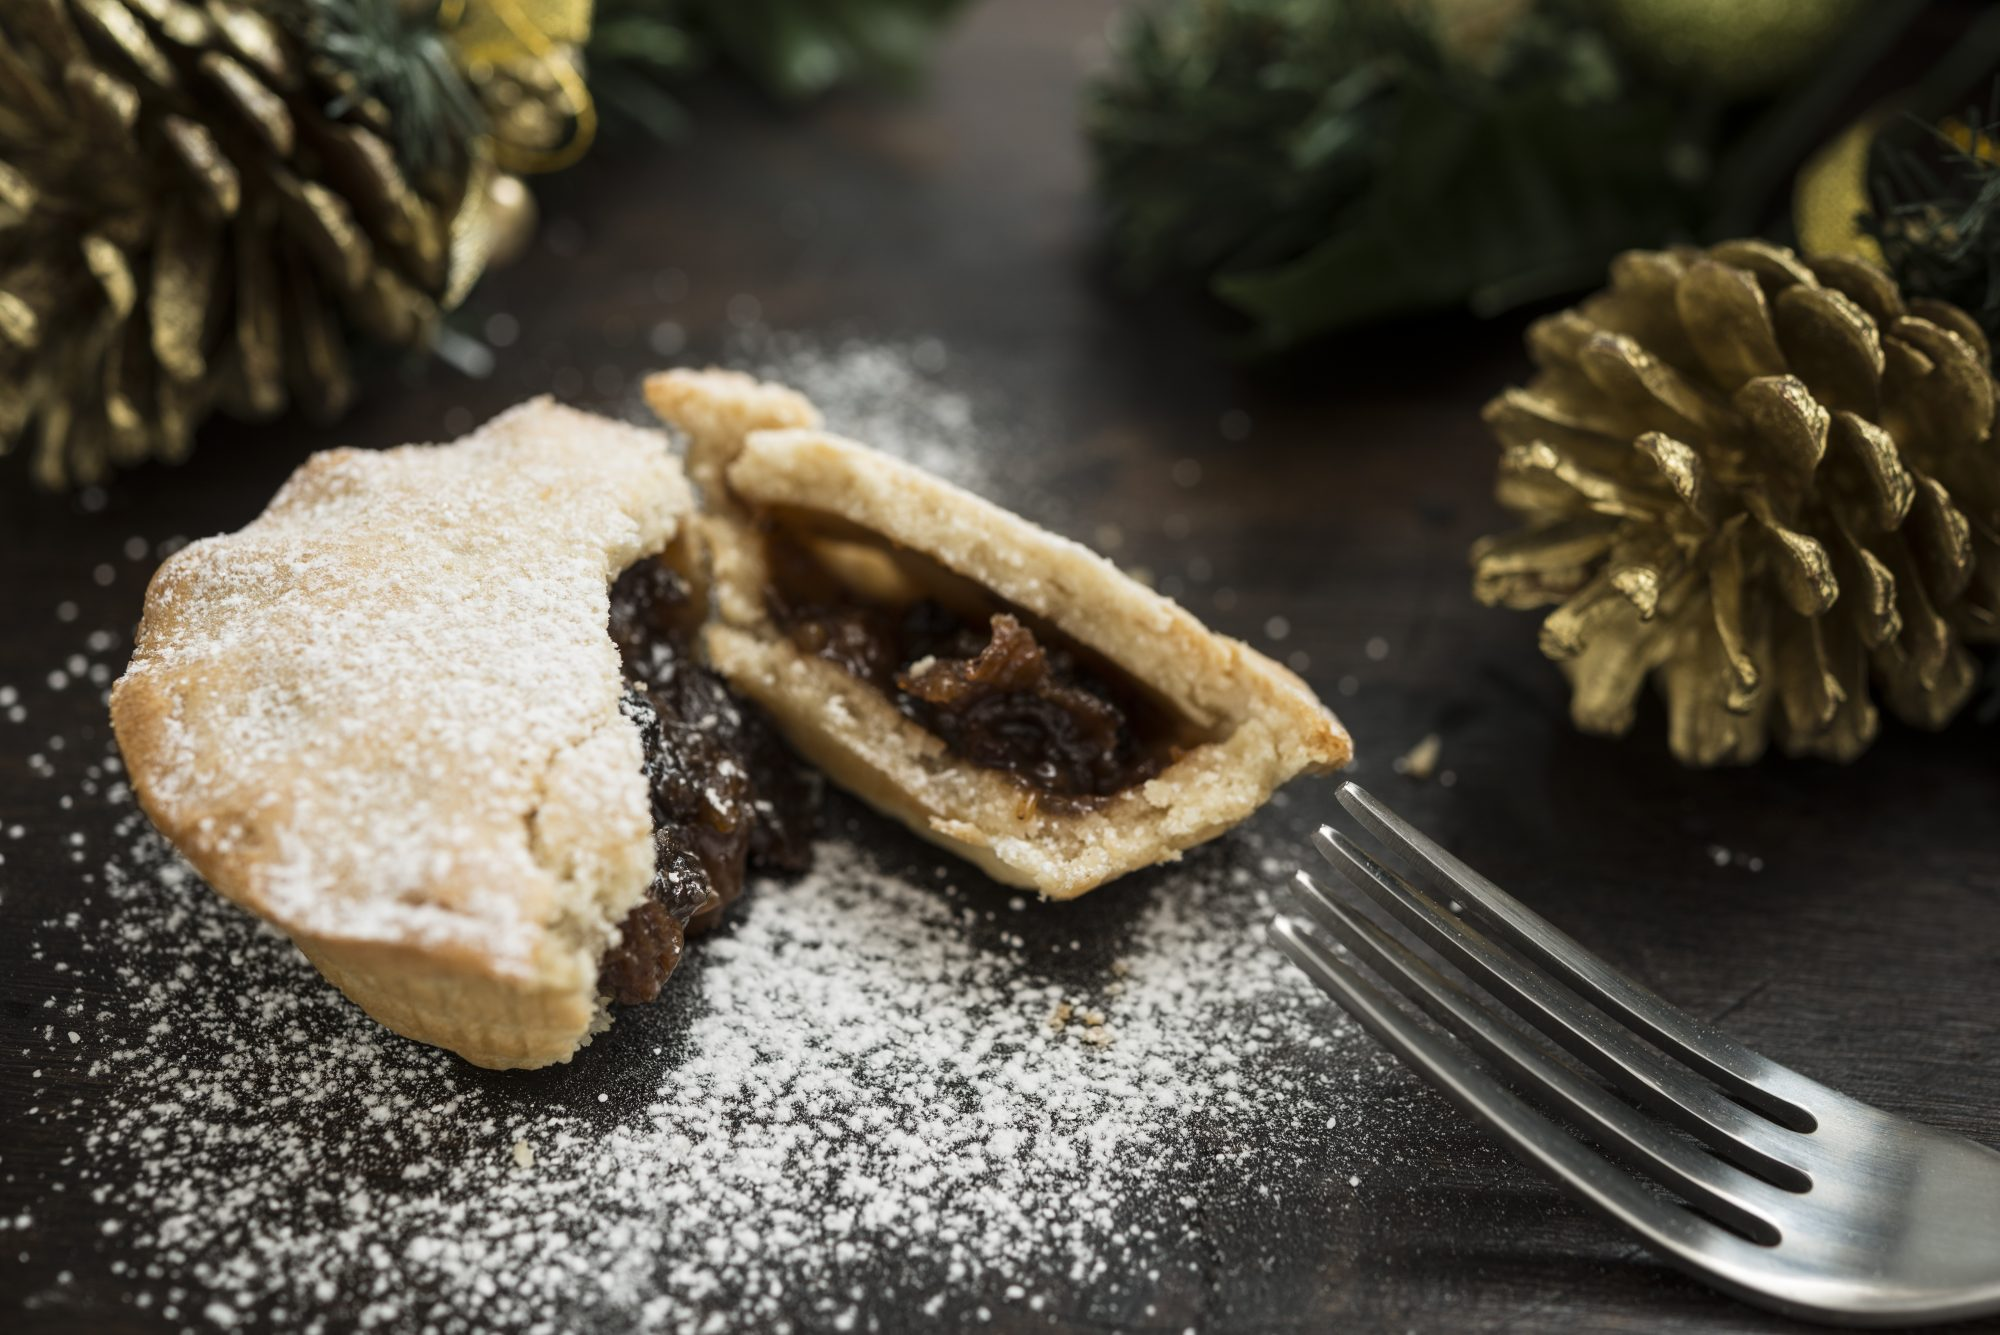 Mince pie Getty 7/1/20